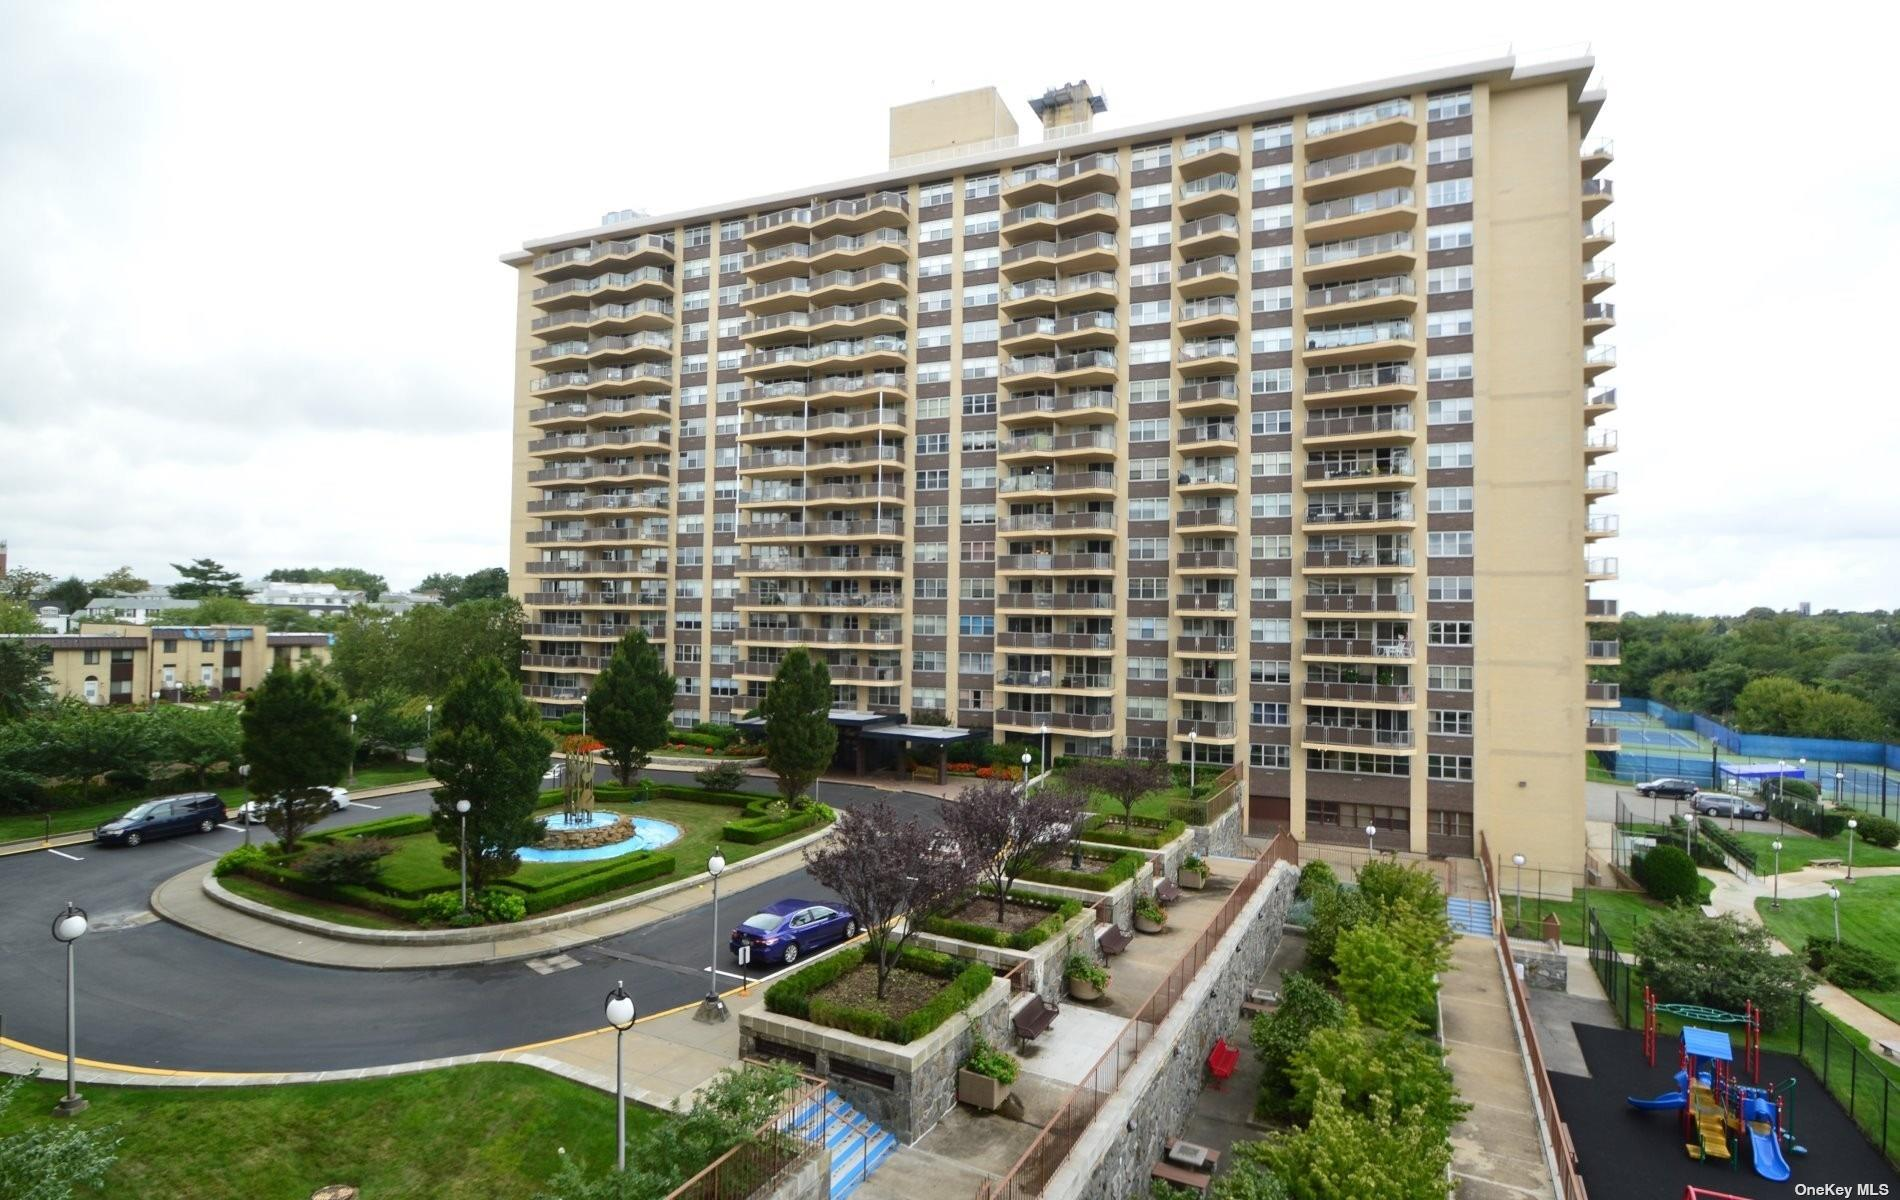 This sleekly renovated ultra spacious 1BR apt. offers an open concept kitchen w/custom cabinetry, high end stainless appliances & granite countertops. Custom lighting thru-out + ample terrace w/stunning water views! Purchase a lifestyle in this luxury bldg w/a 24hr doorman, security, heated pool & spa, tennis courts & an ultra modern, leading edge gym. On premises deli & restaurant, cleaners, reasonable parking & so much more! Live this deluxe lifestyle while also being in ultra close proximity to ALL!